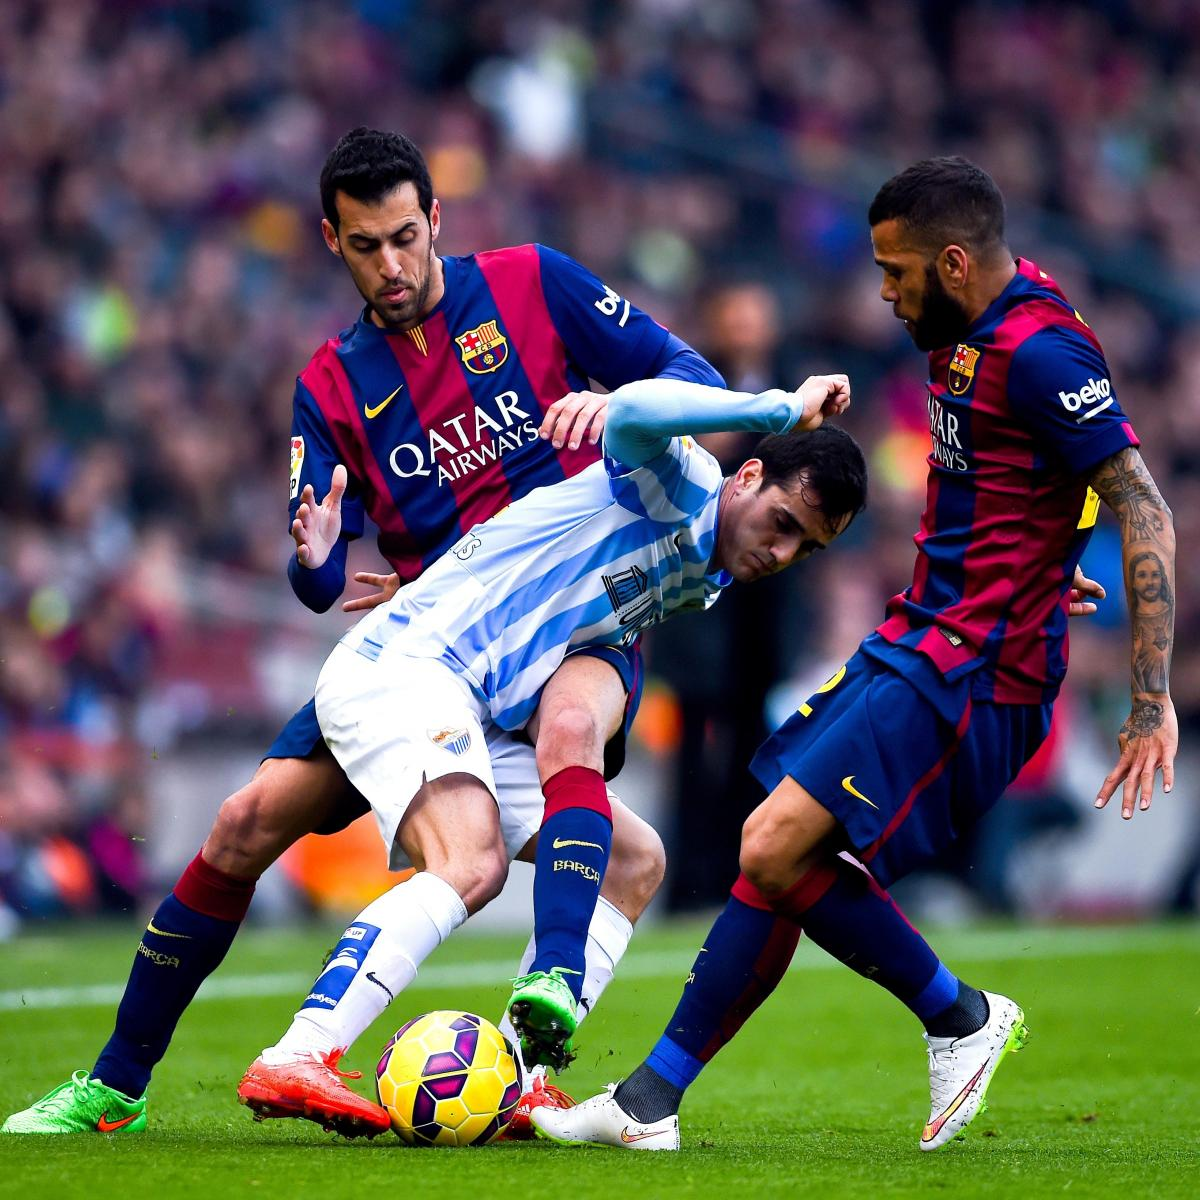 Apoel Vs Barcelona Score Grades And Reaction From: Barcelona Vs. Malaga: Score, Grades And Reaction From 2015